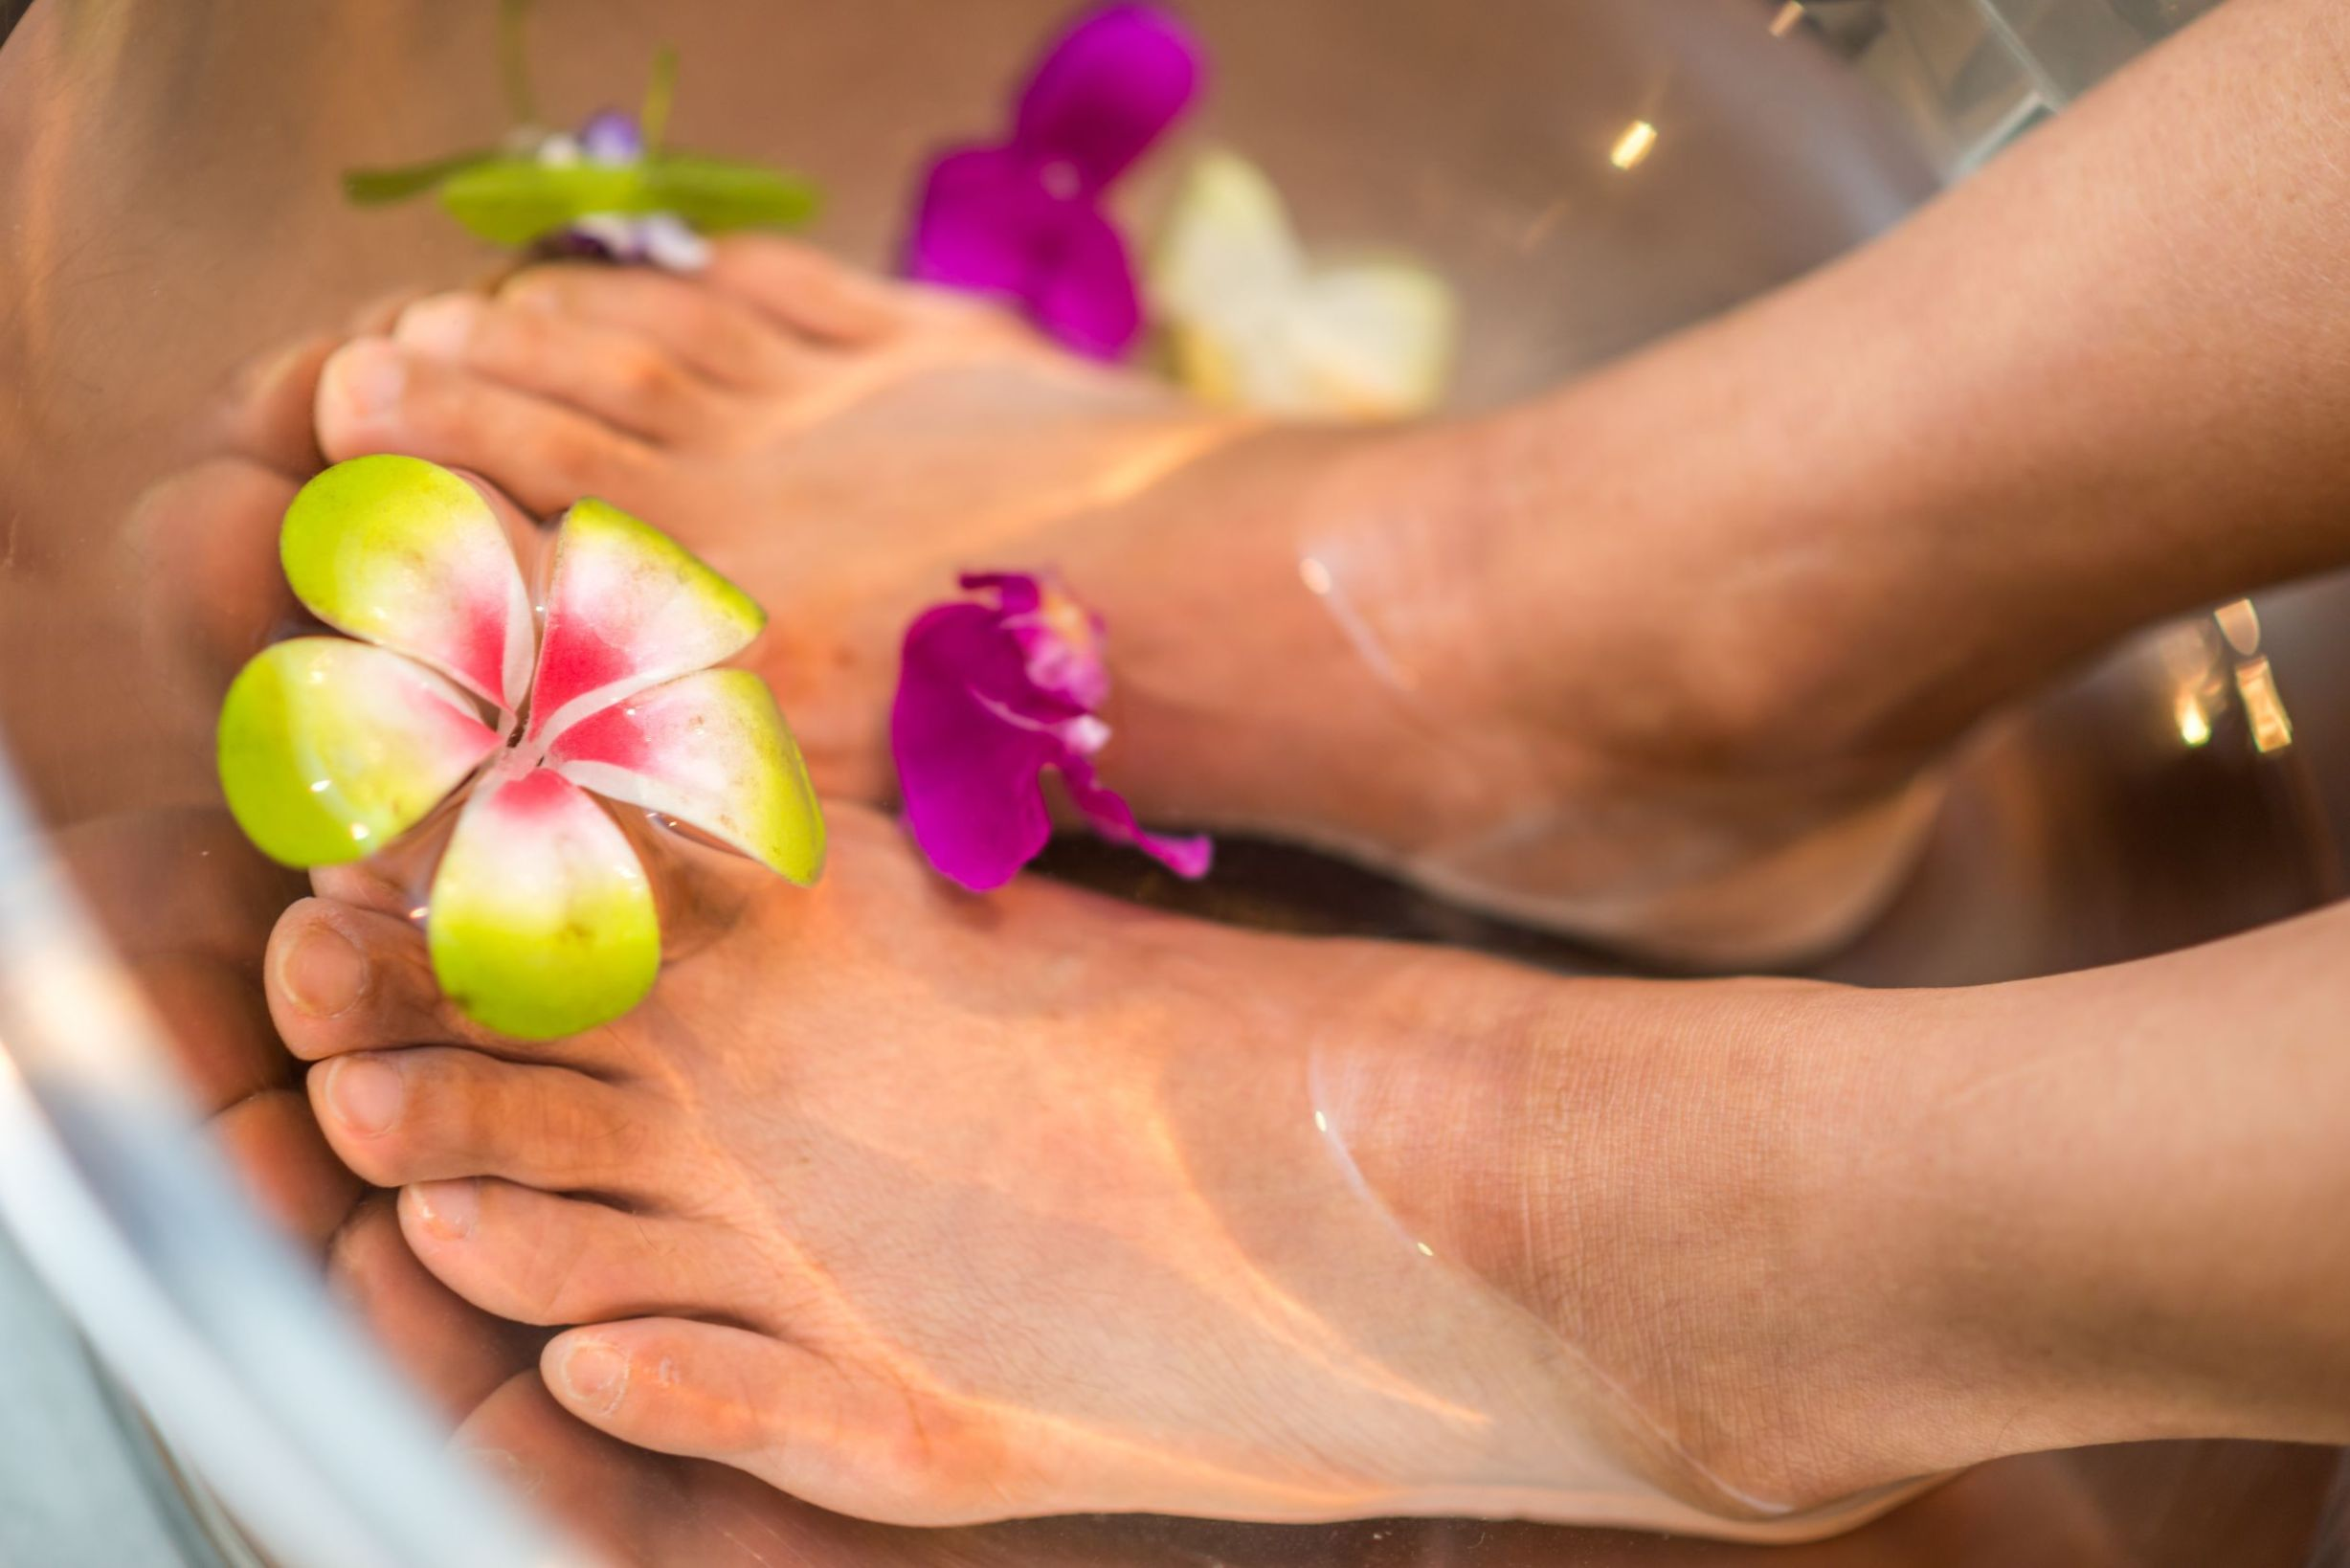 Listerine Foot Soak: Everything You Need to Know!